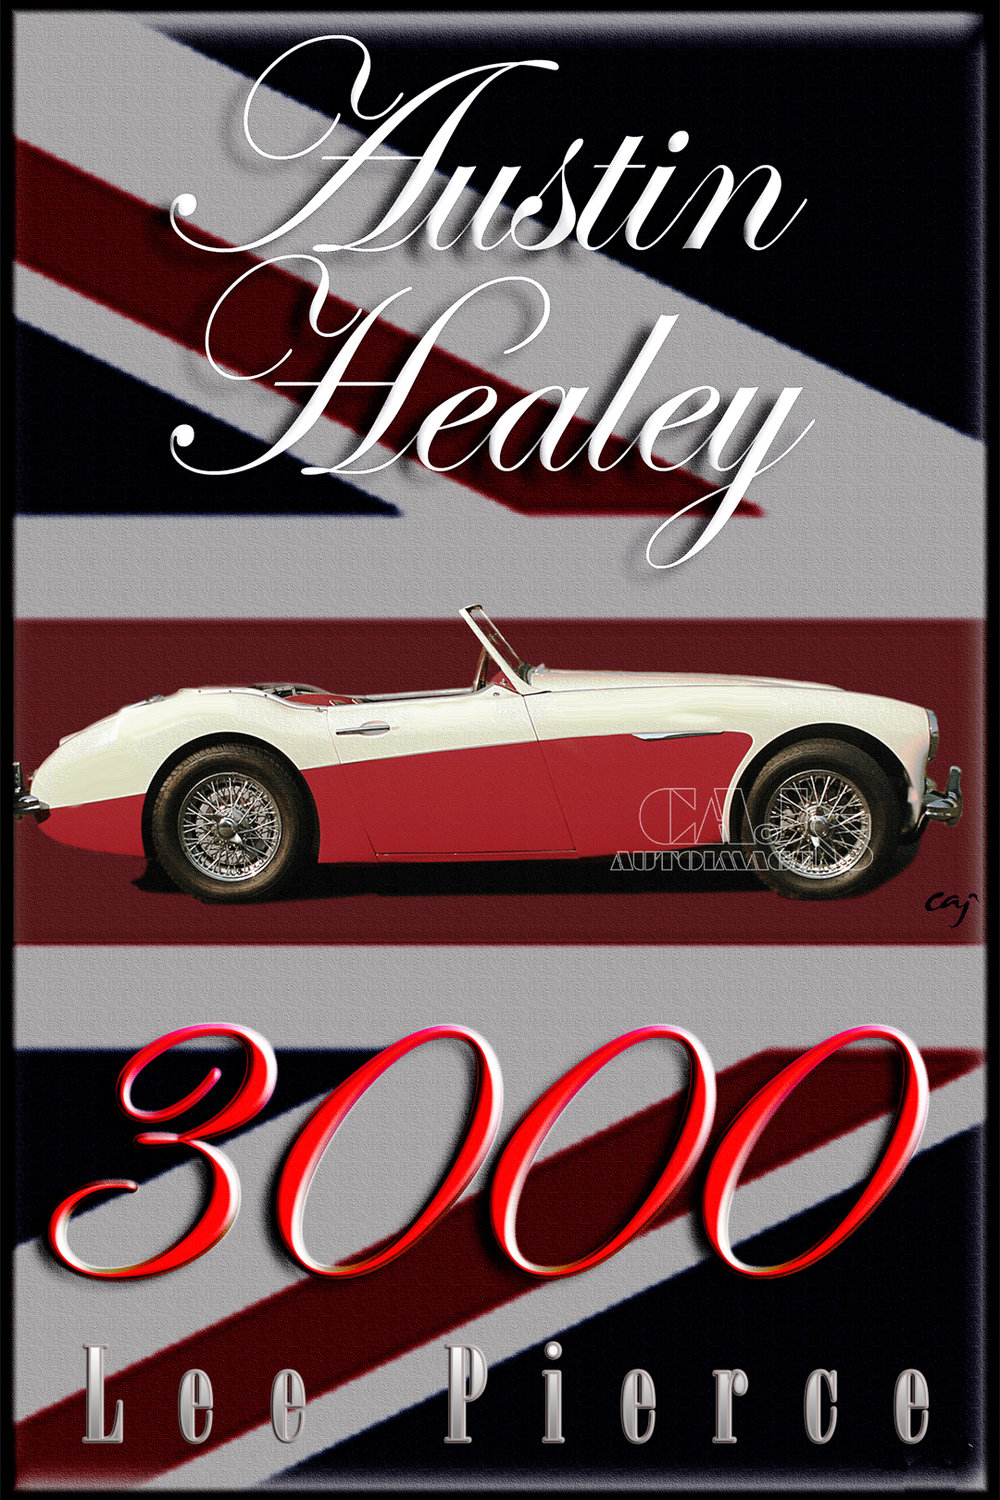 AUSTIN HEALEY 3000 PROFILE.jpg